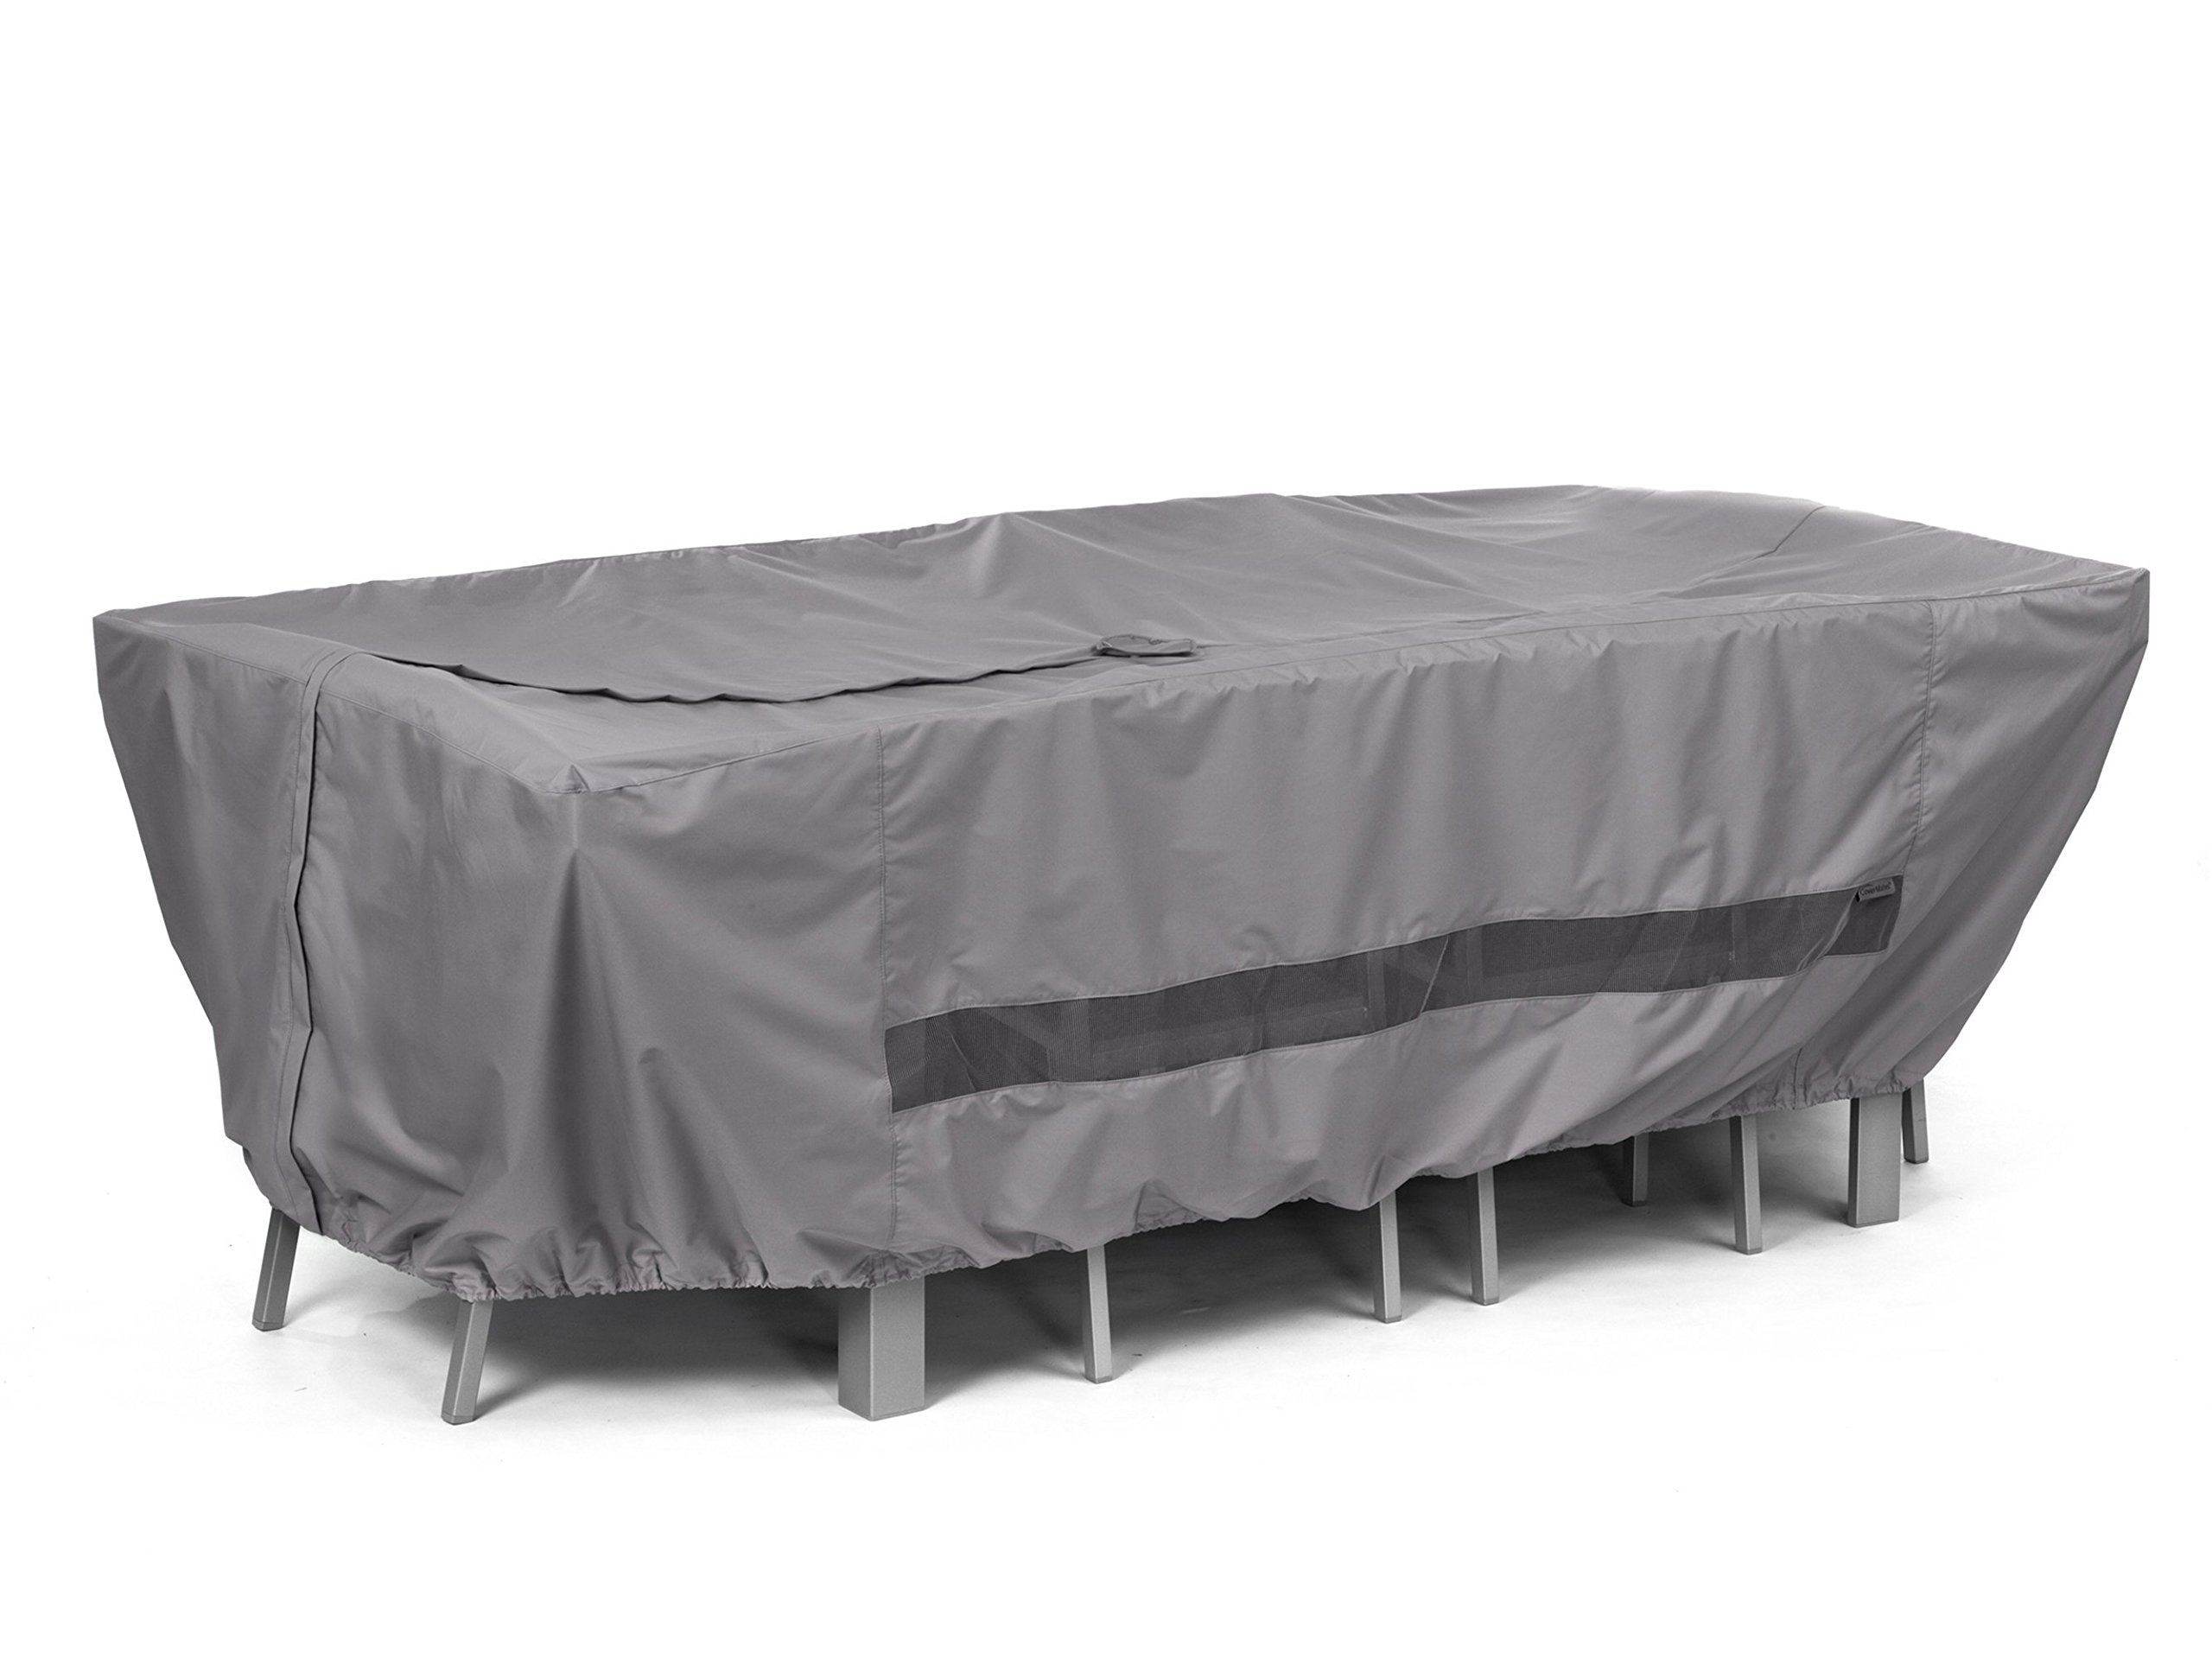 Covermates - Rectangular Dining Table/Chair Set Cover - 90W x 58D x 30H - Elite Collection - 3 YR Warranty - Year Around Protection - Charcoal by Covermates